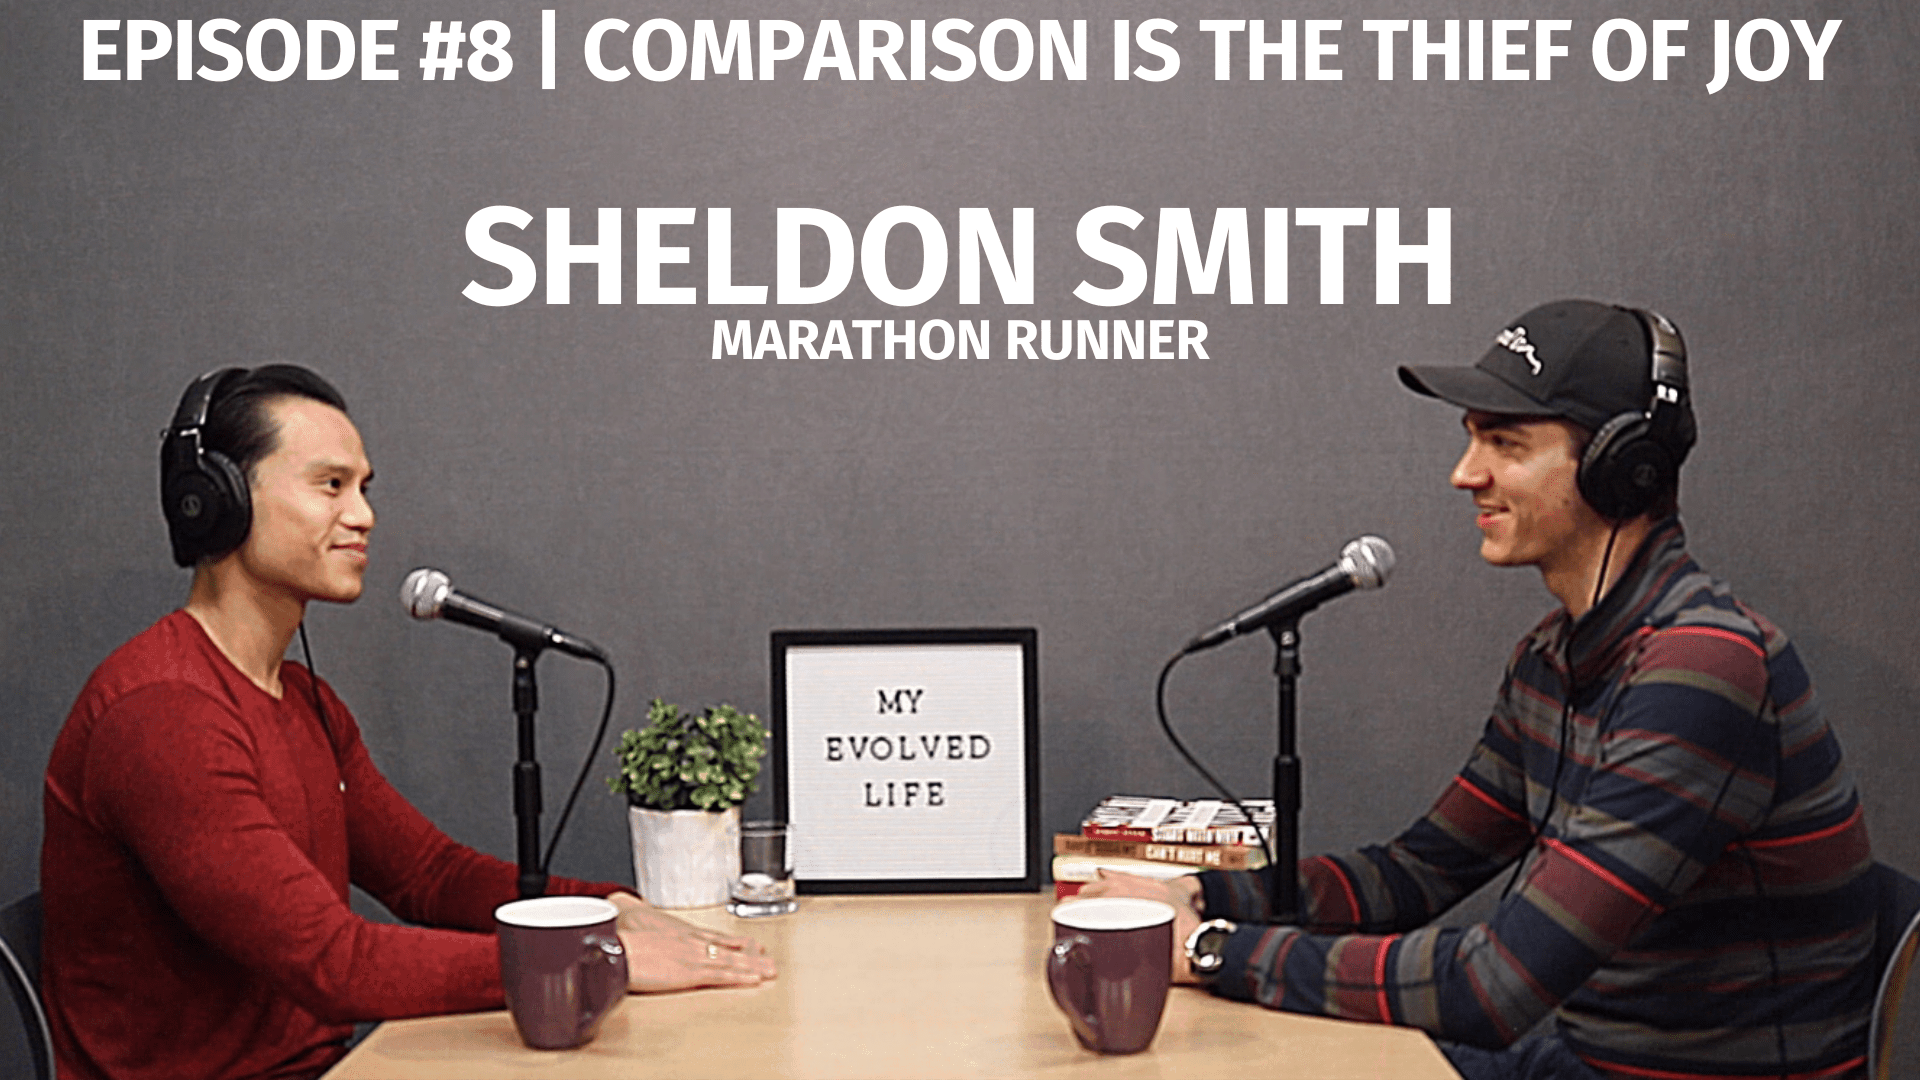 My Evolved Life Episode #8 - Sheldon Smith - Comparison is the Thief of Joy